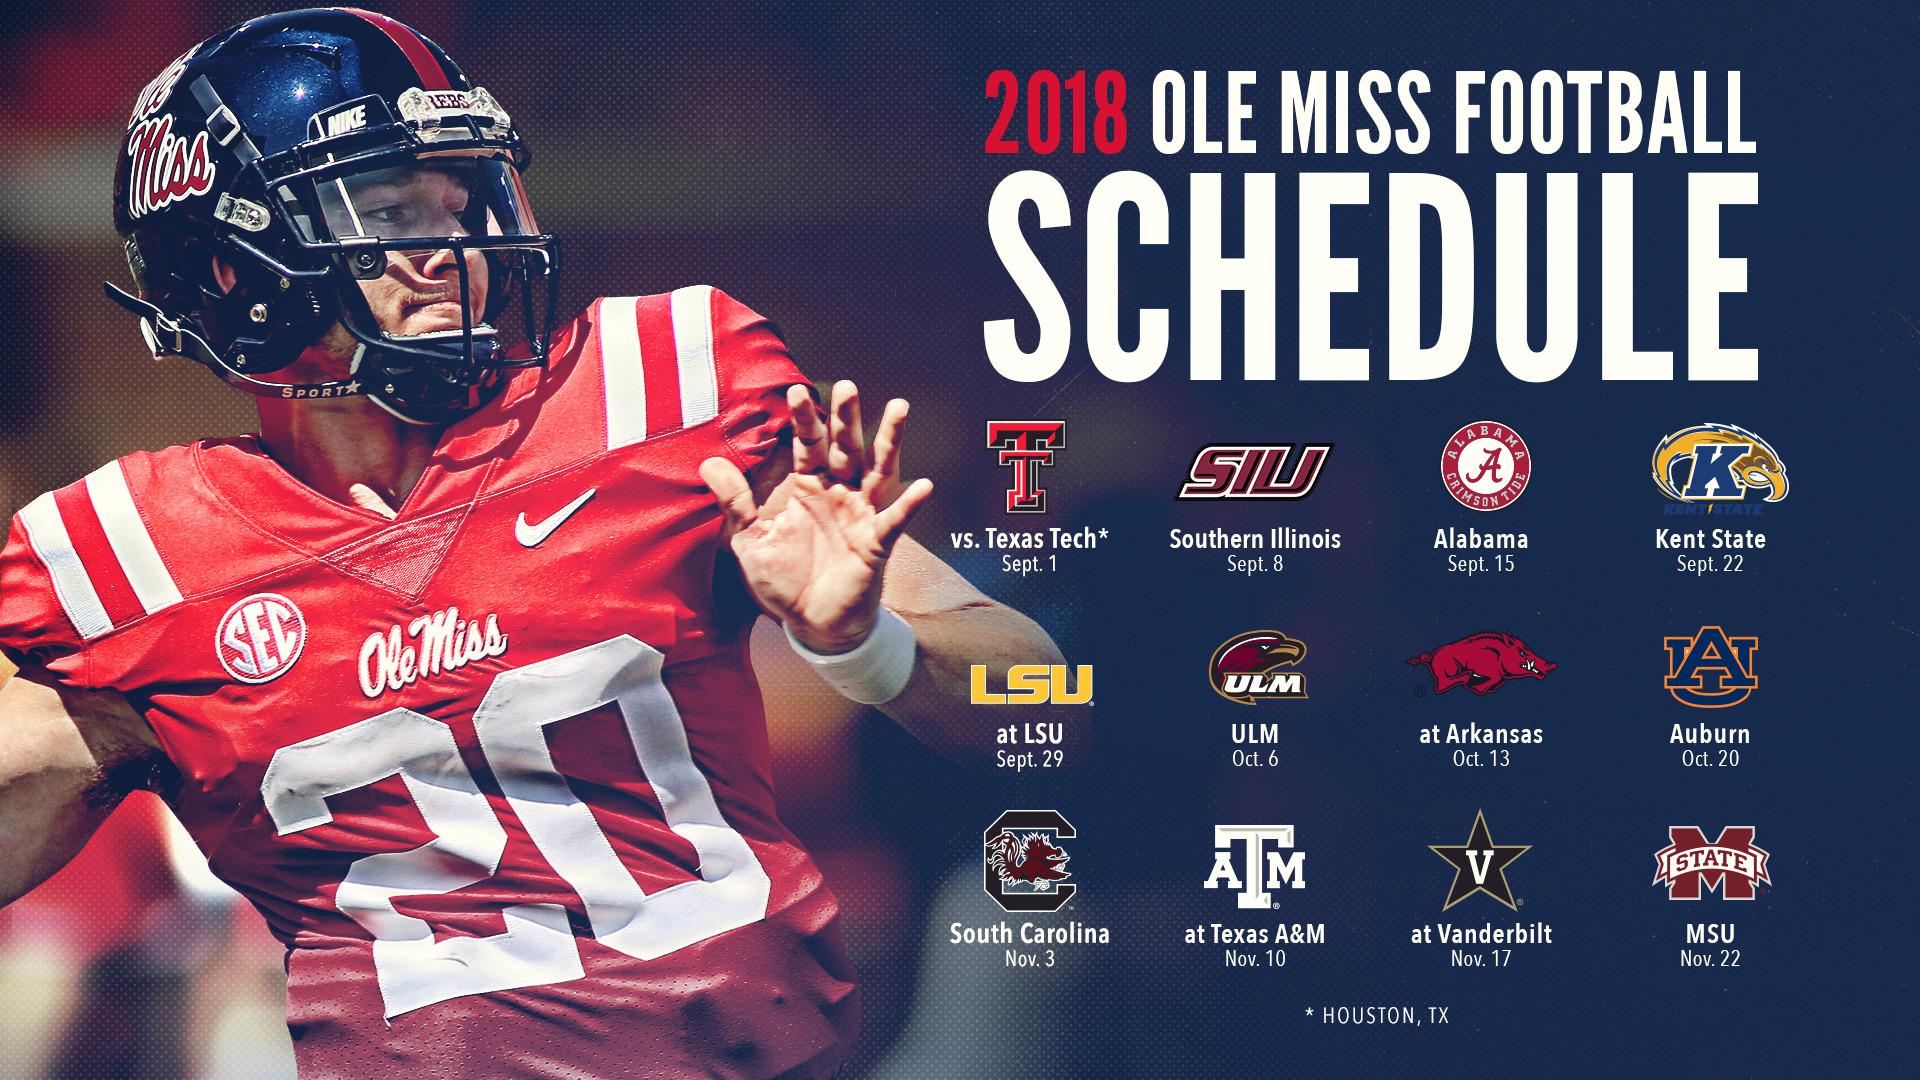 Ole Miss Schedule 2019 Ole Miss Football Announces 2018 Schedule   Ole Miss Athletics